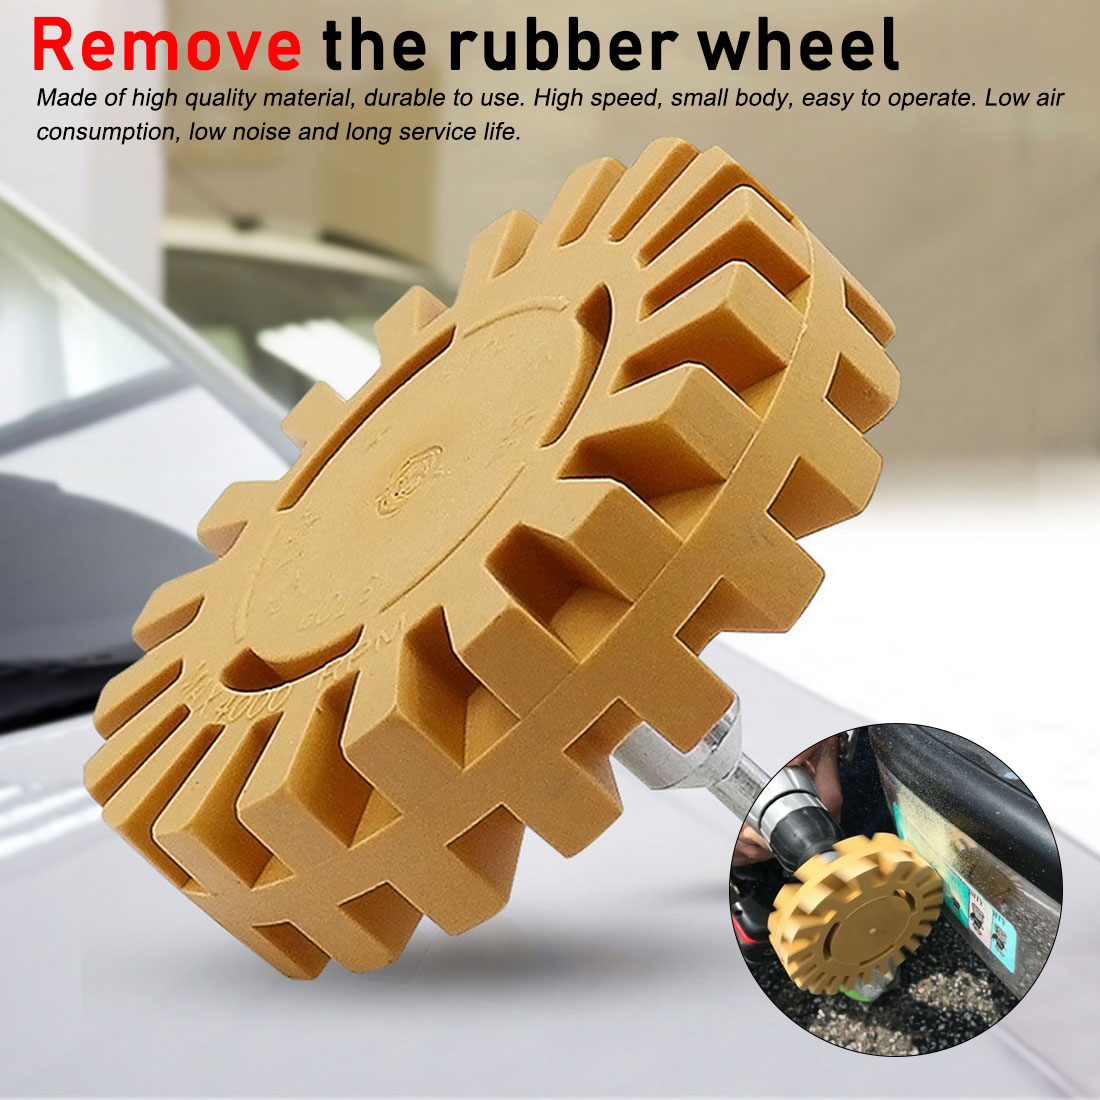 """Polishing Wheel Decal Remover 1/4"""" Shank Rubber Eraser Wheel Quick Polishing Removal Tool For Car Stickers And Decals